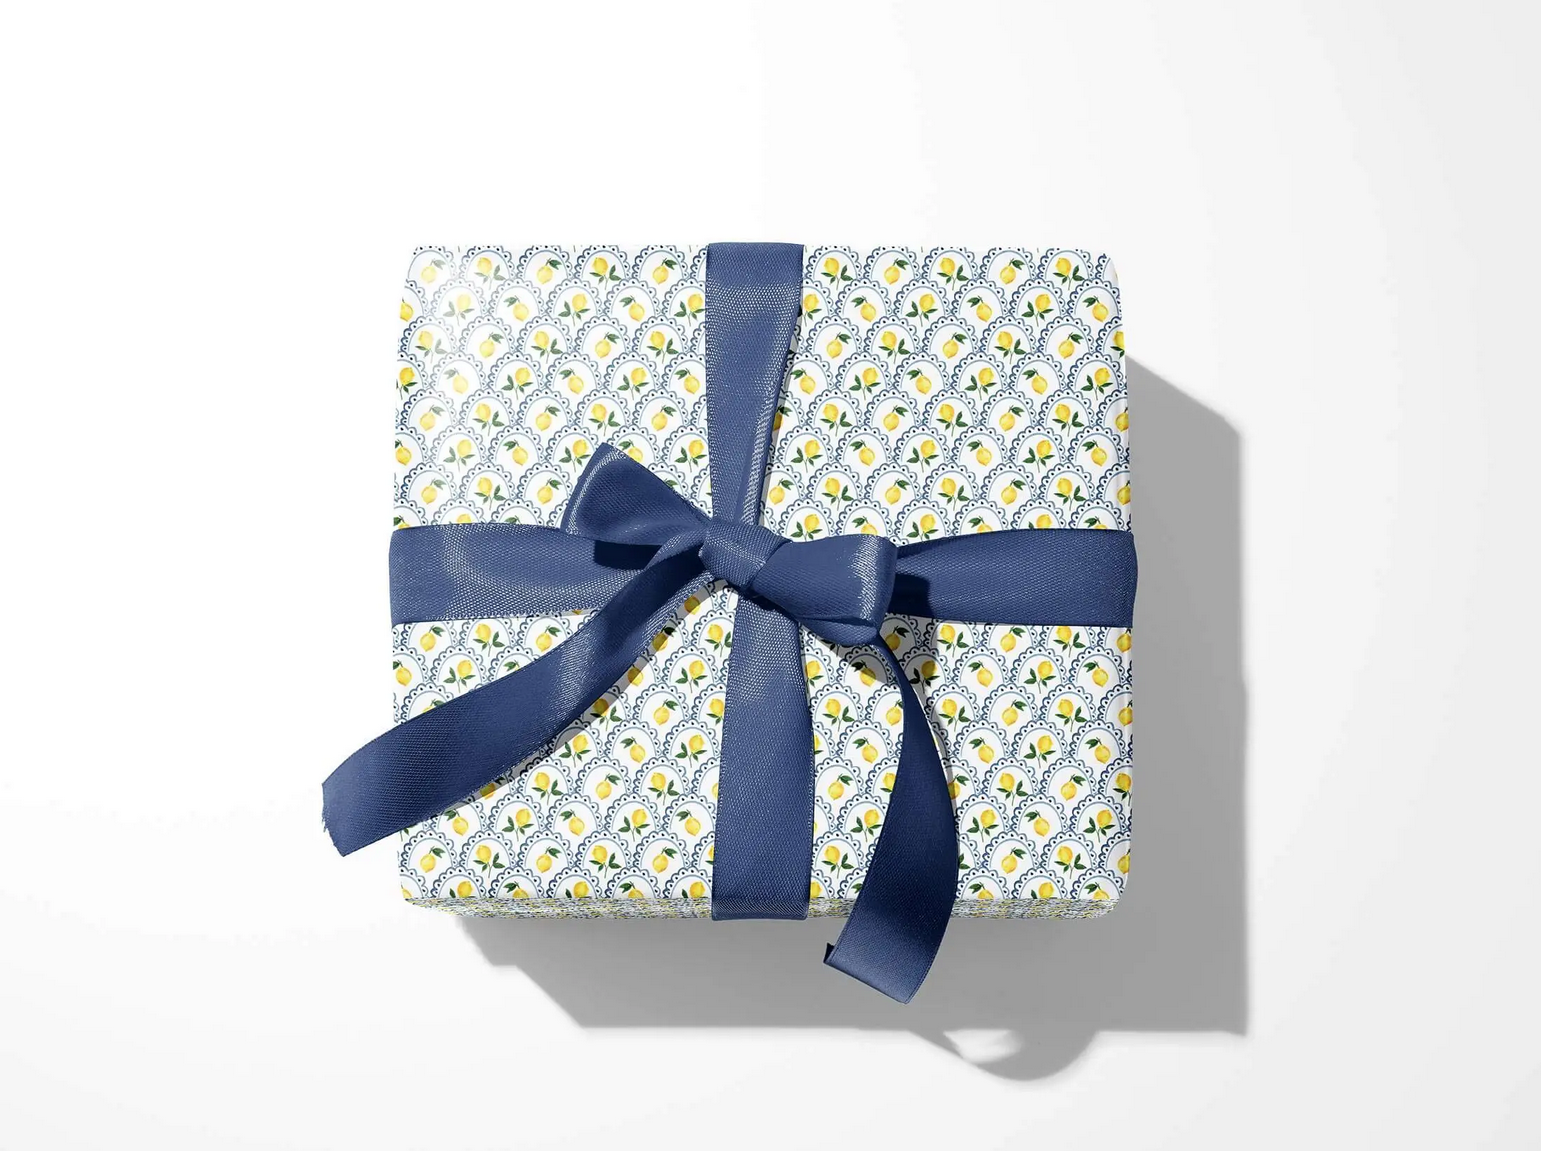 Emily Quigley Ink - EQI Lemon Scallop Gift Wrap, Roll of 5 Sheets